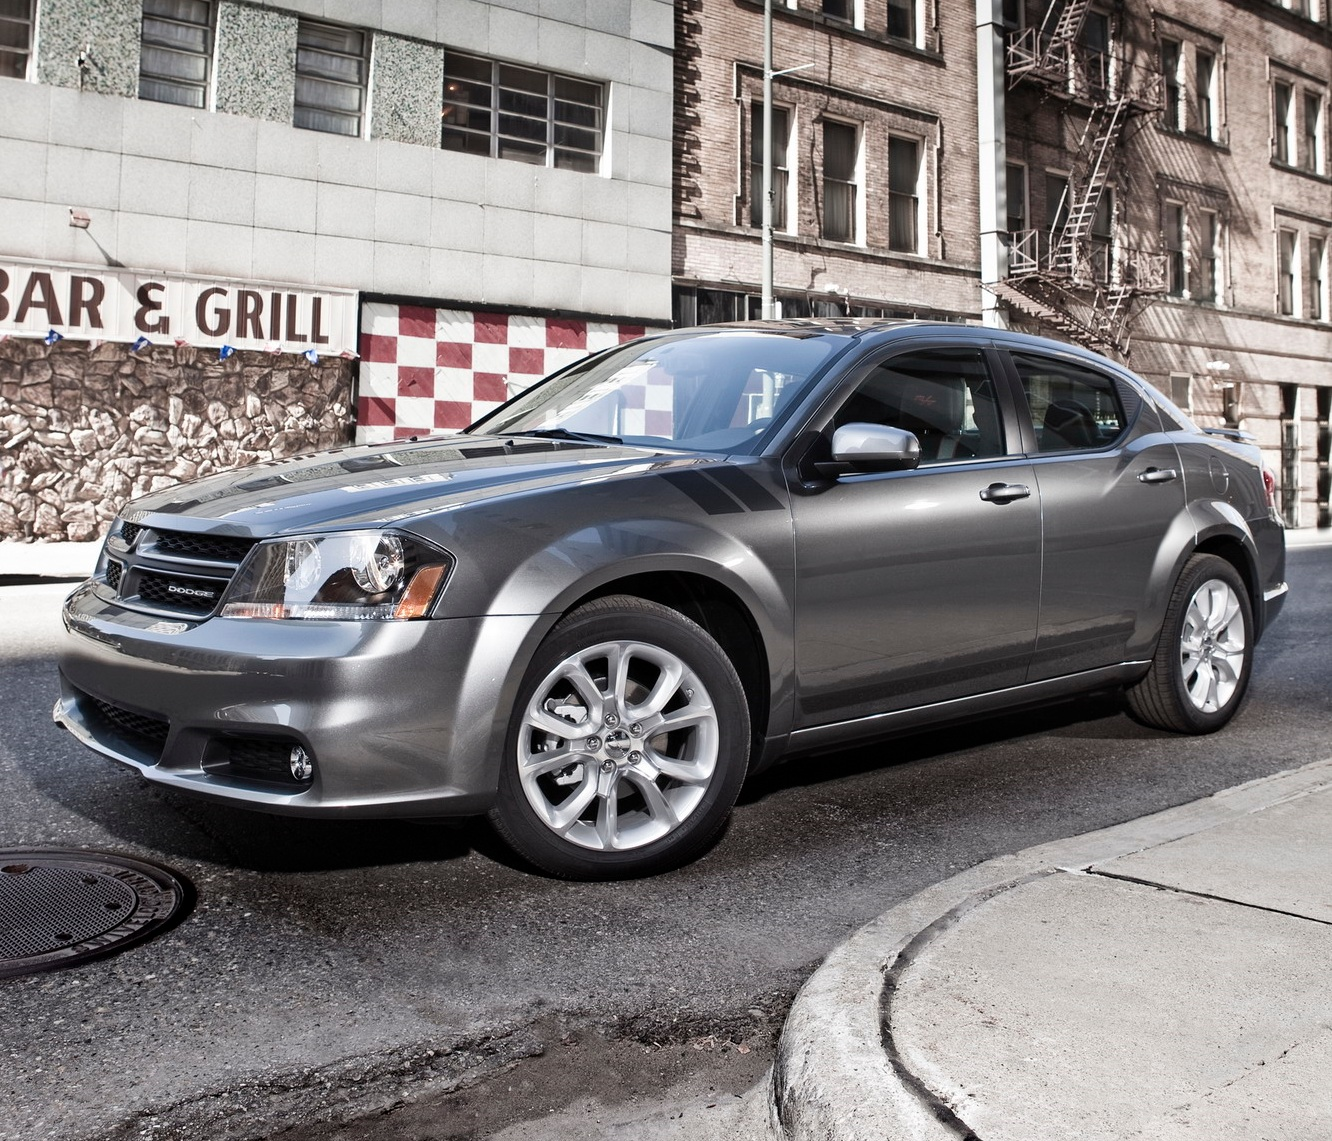 2011 Dodge Avenger R/T Review